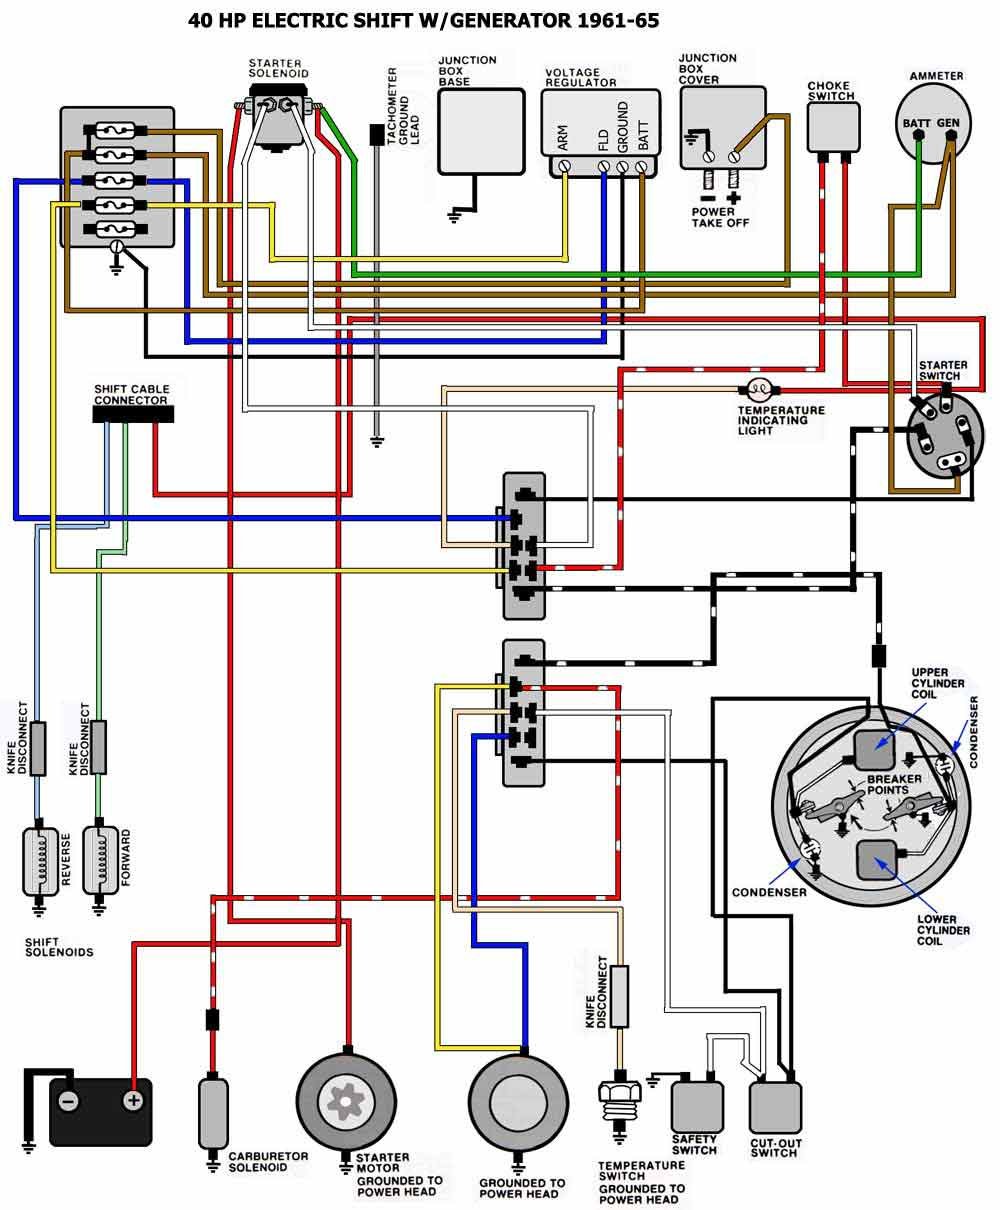 medium resolution of mercury mariner wiring diagram wiring diagram todays75 hp mariner outboard wiring diagram wiring diagram for chrysler